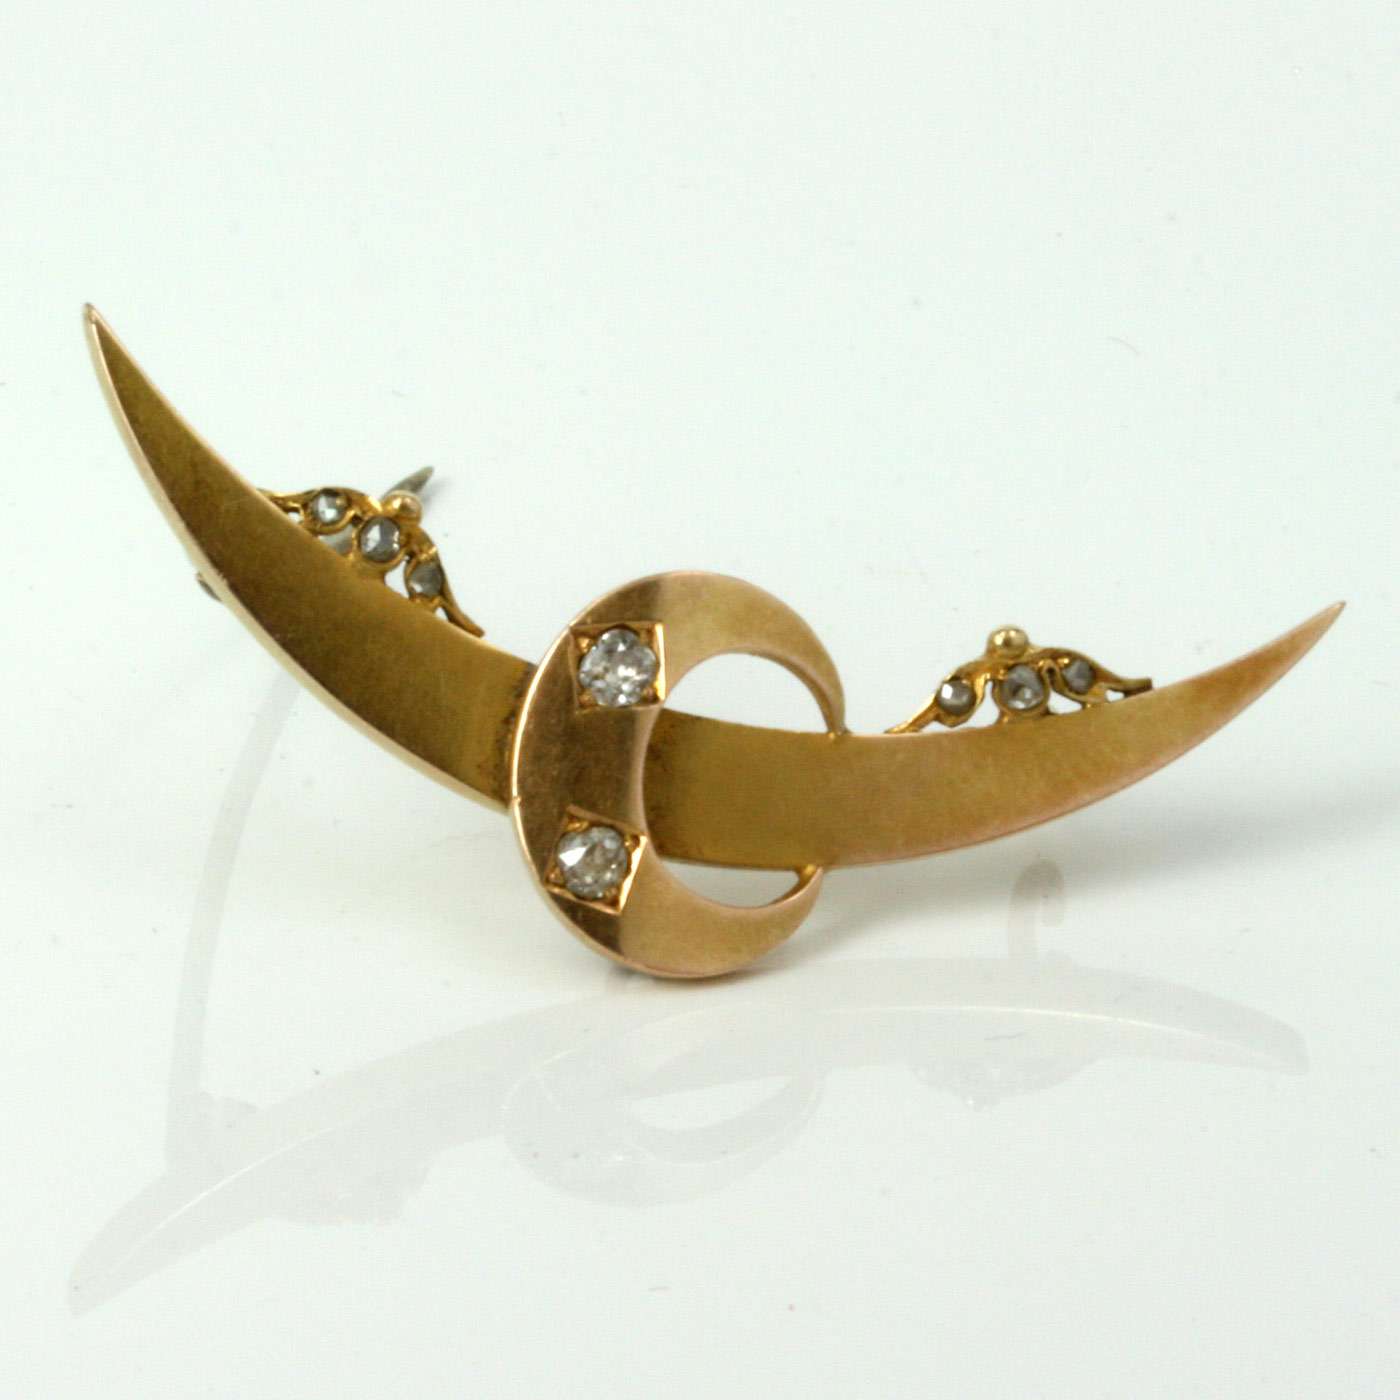 Antique 15ct gold diamond crescent brooch.